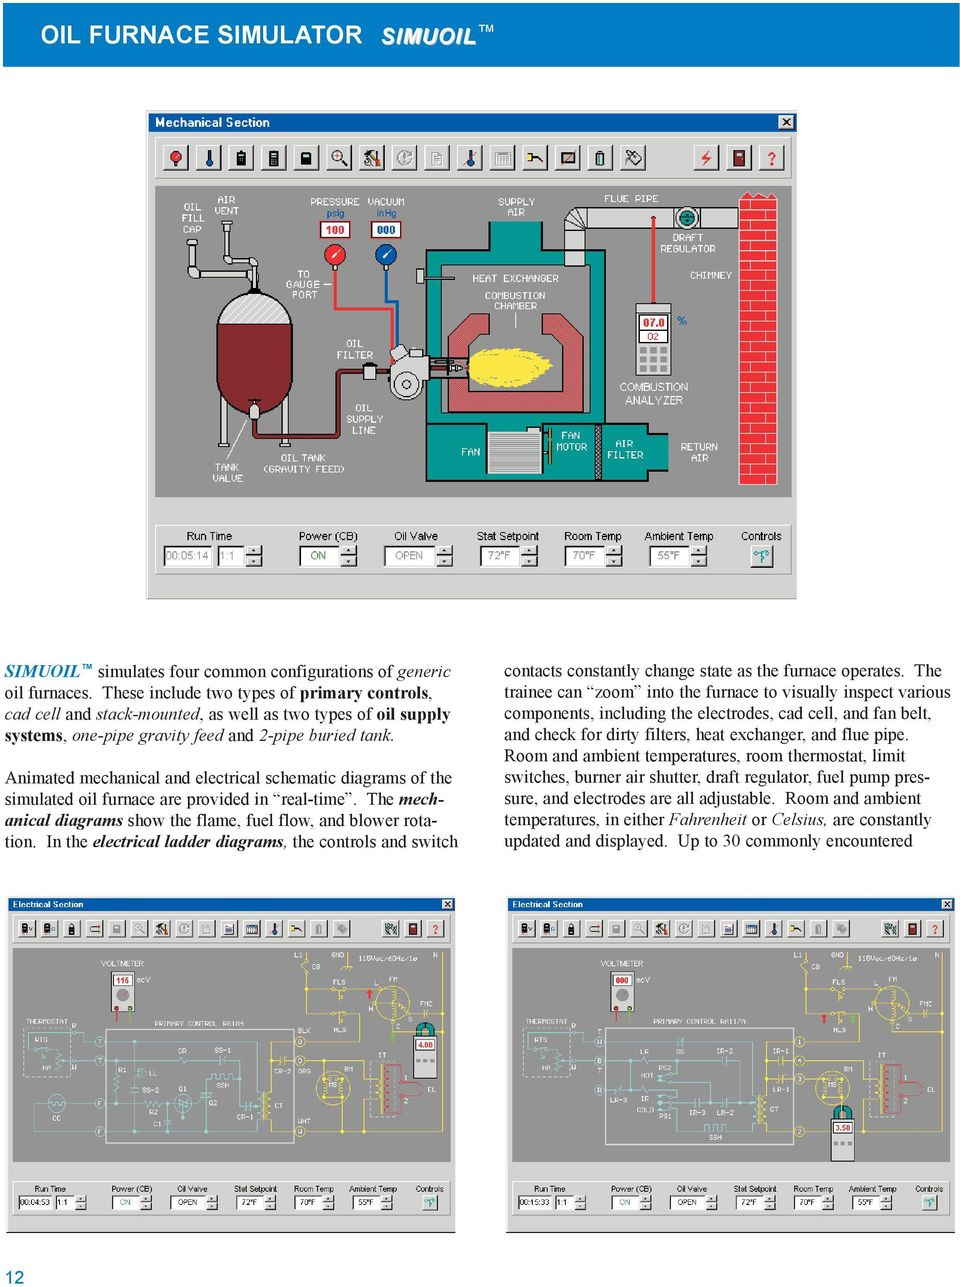 Simulation Software For Hvacr Training Simulator Systems Pdf Is Very Useful When Simulating This Type Of Circuit Diagram Animated Mechanical And Electrical Schematic Diagrams The Simulated Oil Furnace Are Provided In Real